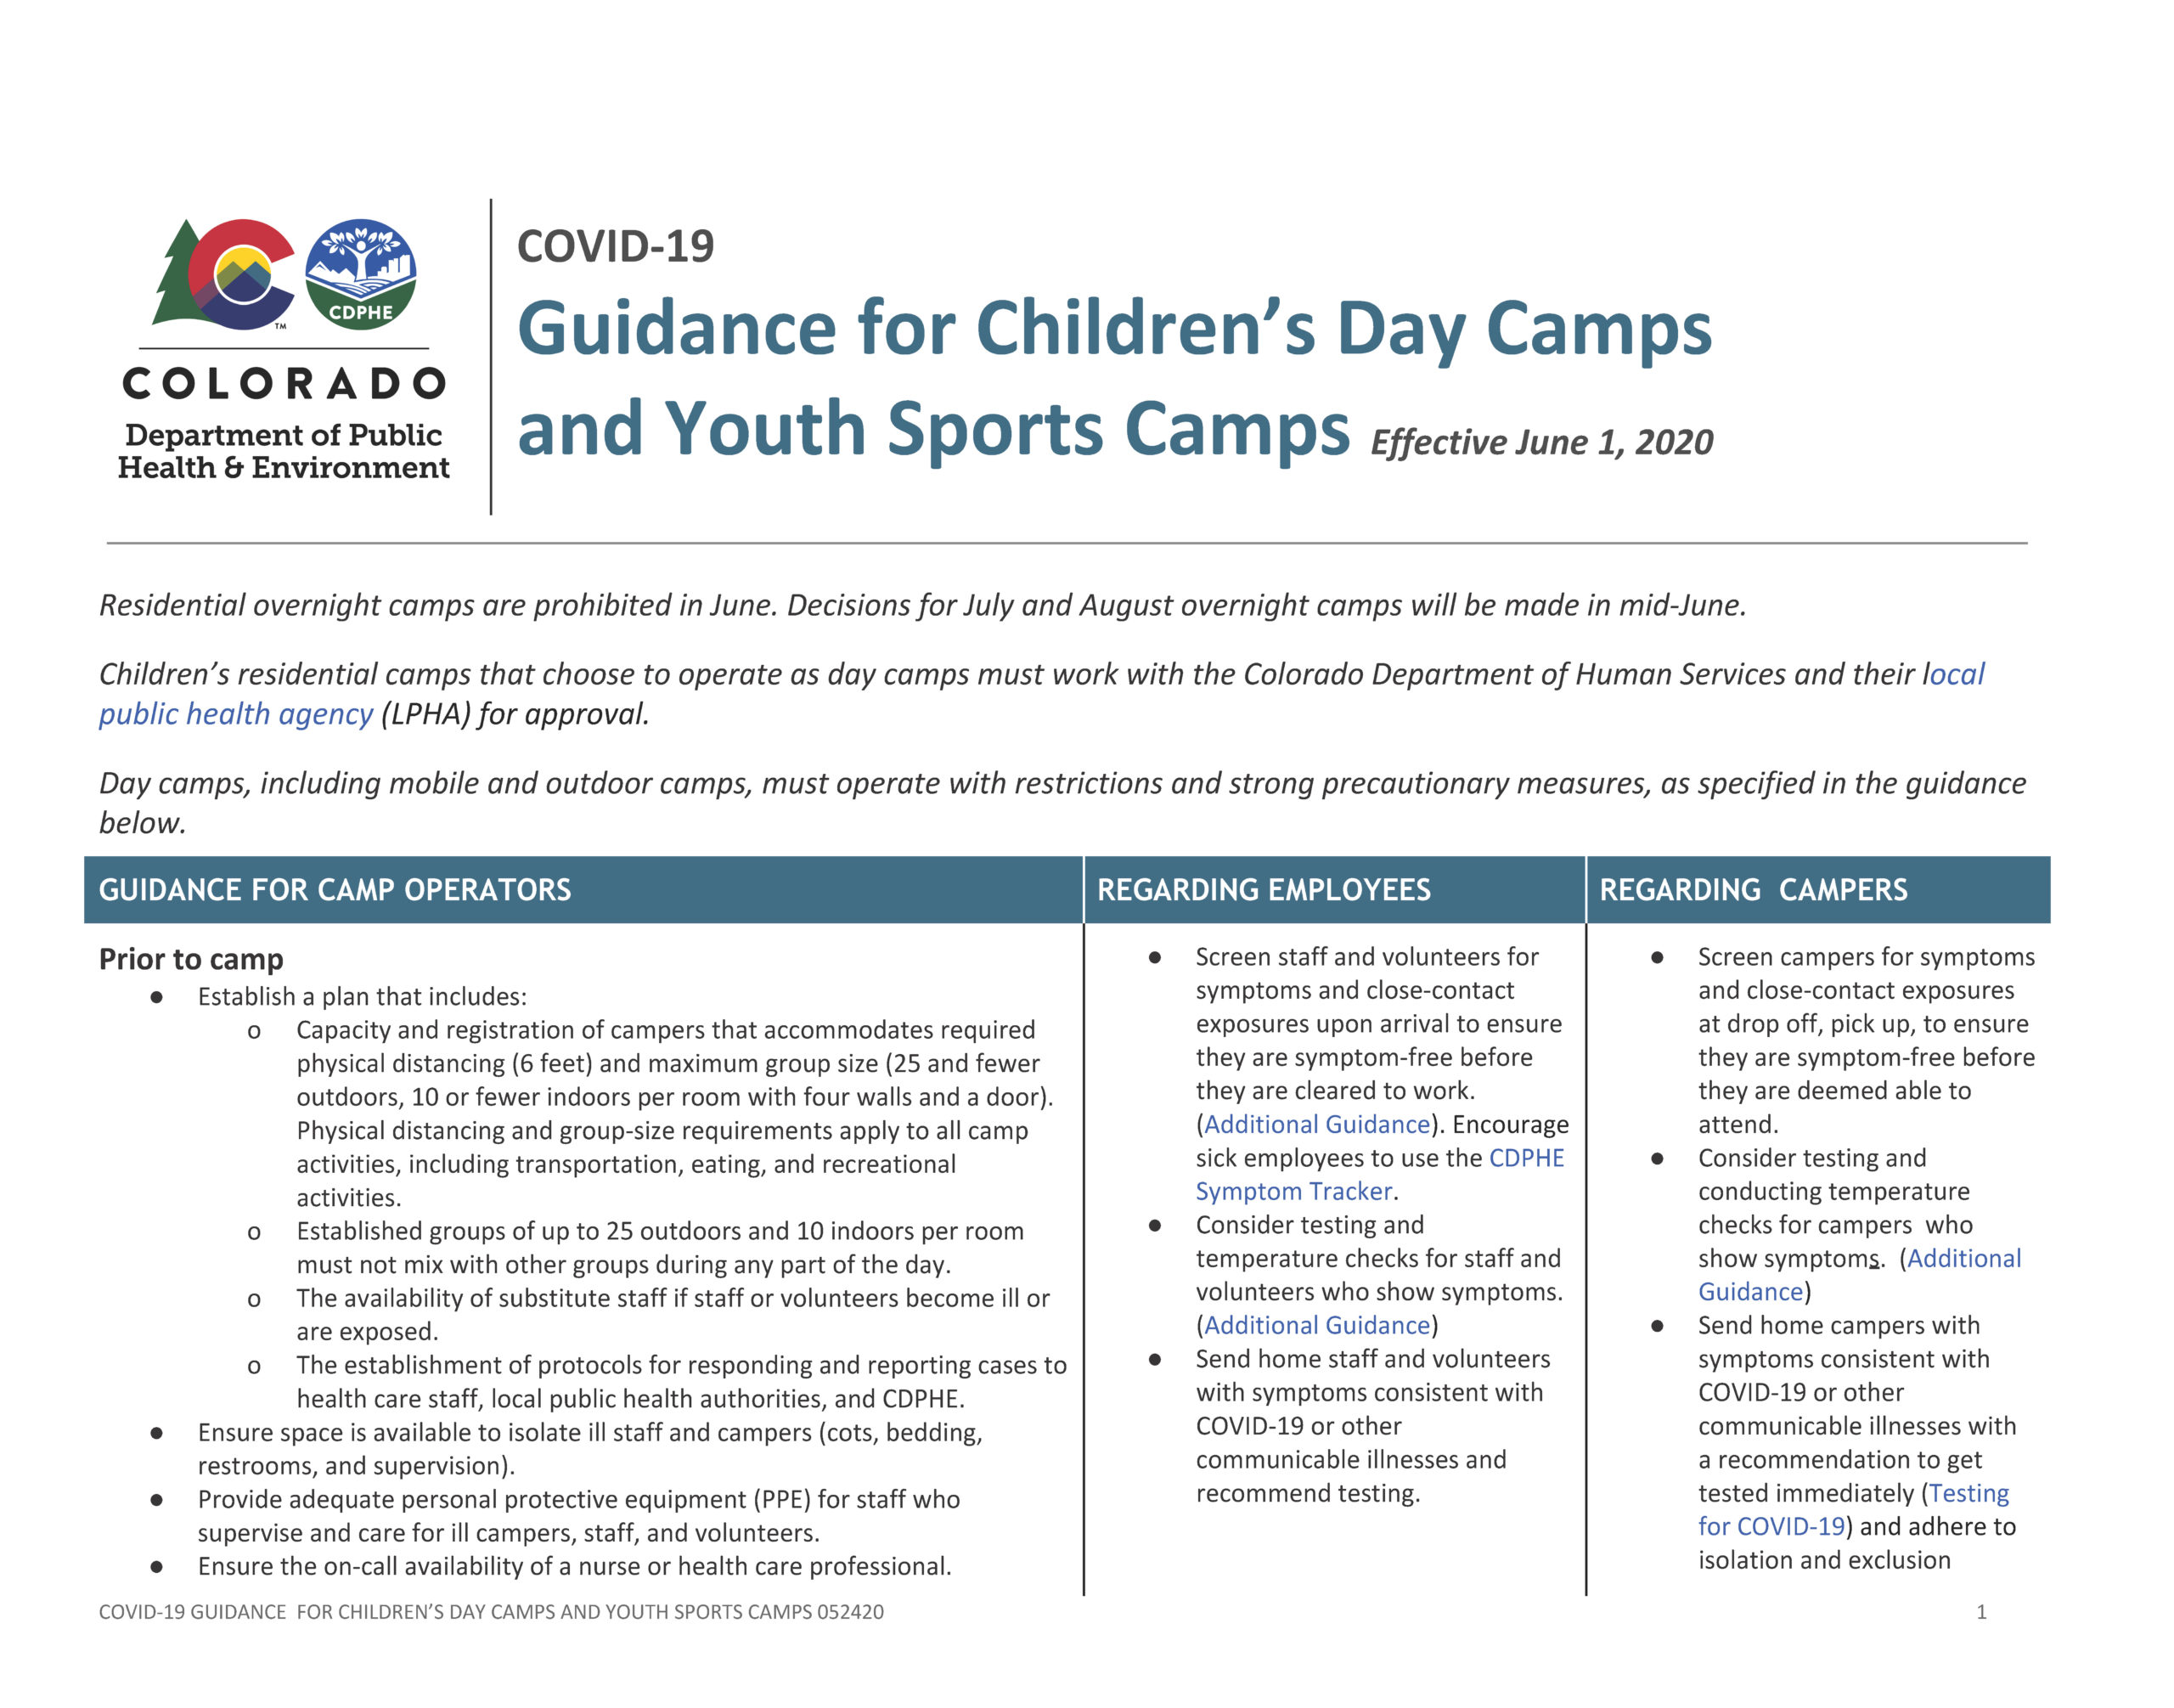 Children's Day Camps and Youth Sports Camps Allowed as of June 1